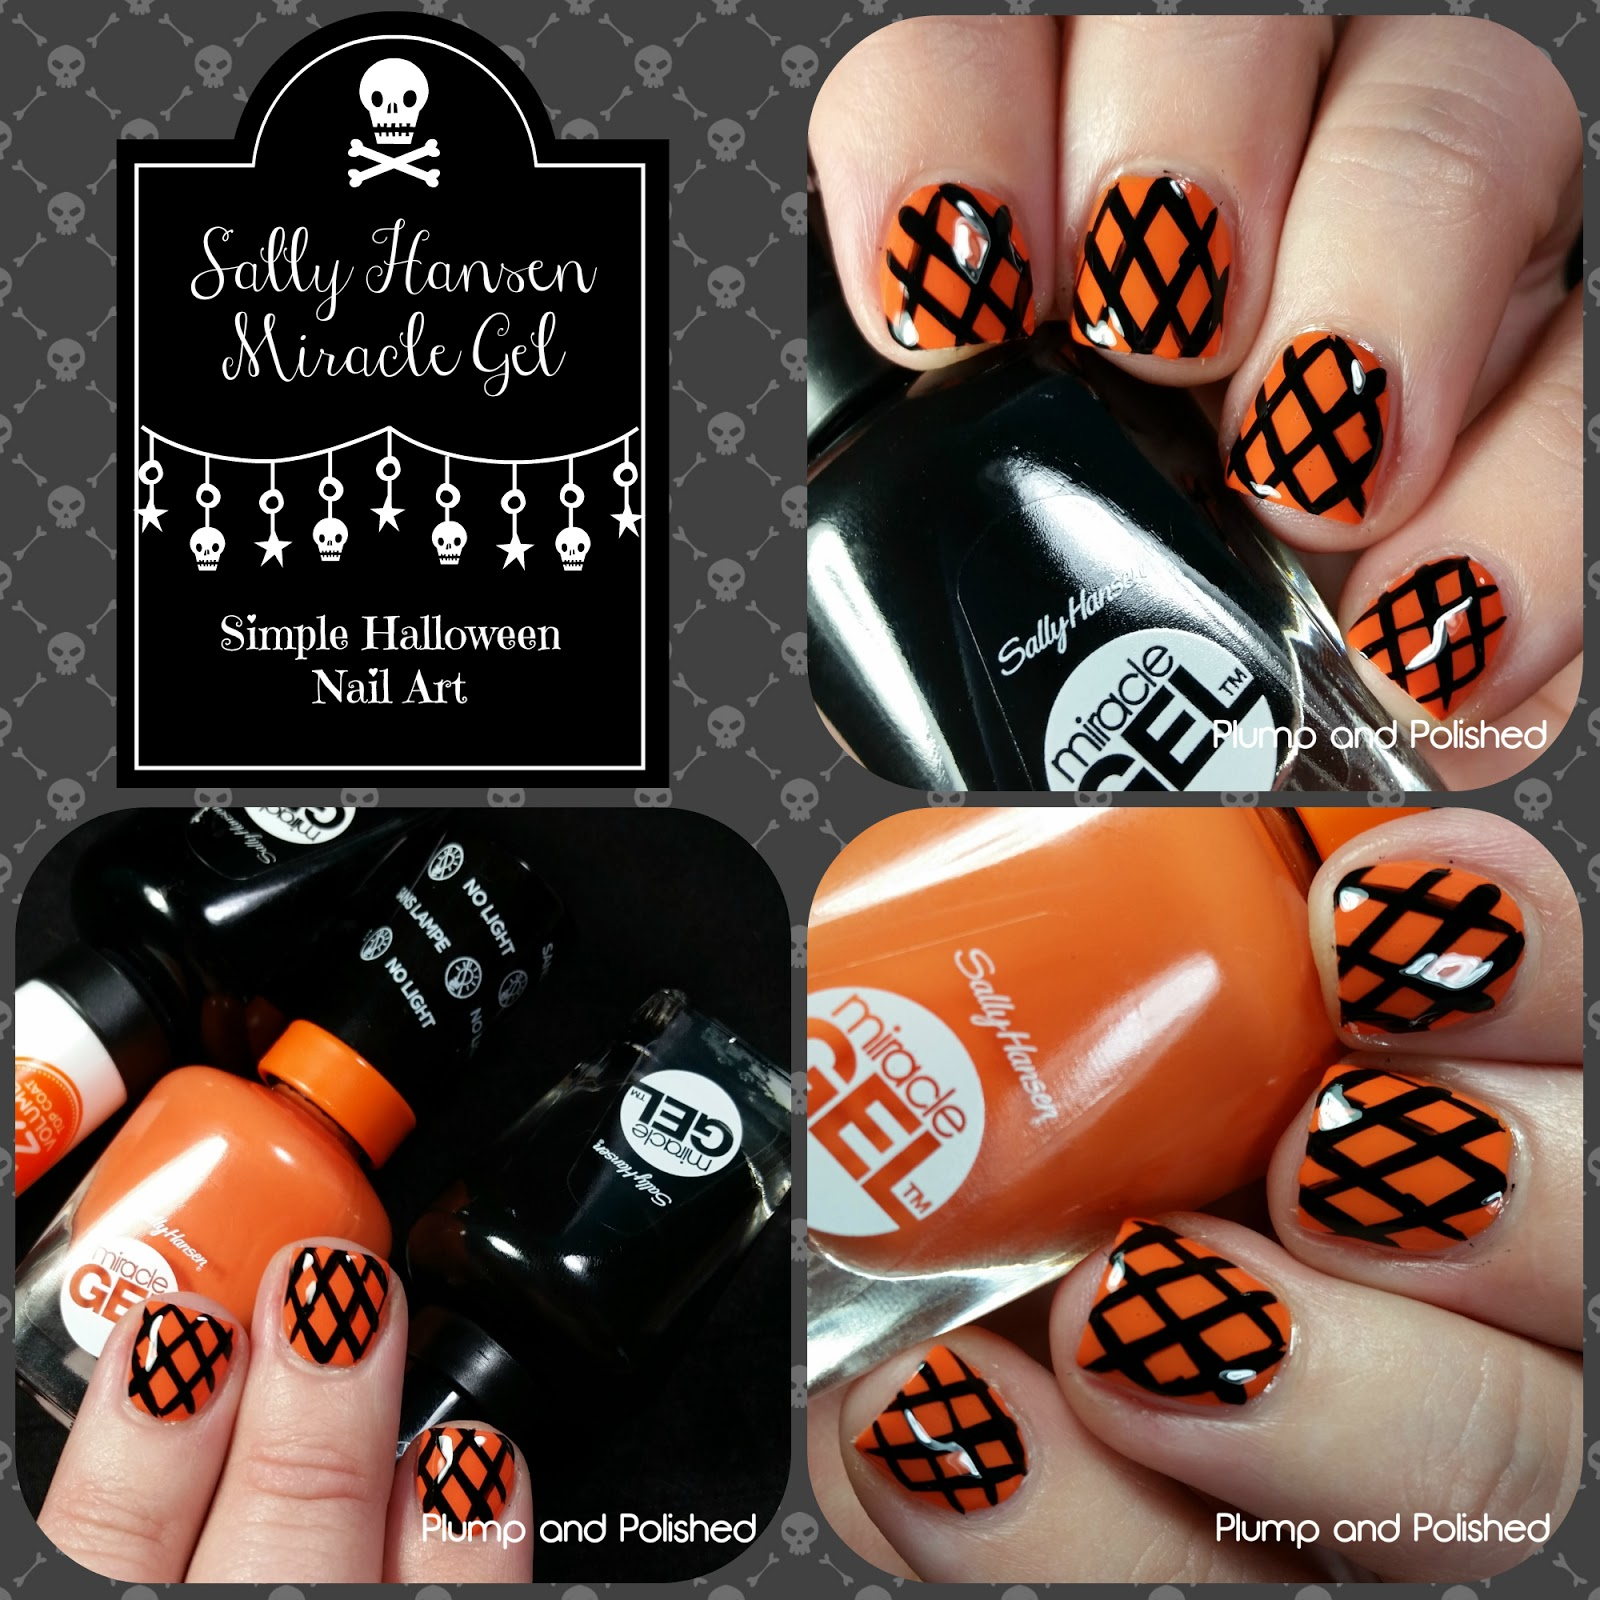 Plump And Polished Sally Hansen Miracle Gel Simple Halloween Nail Art